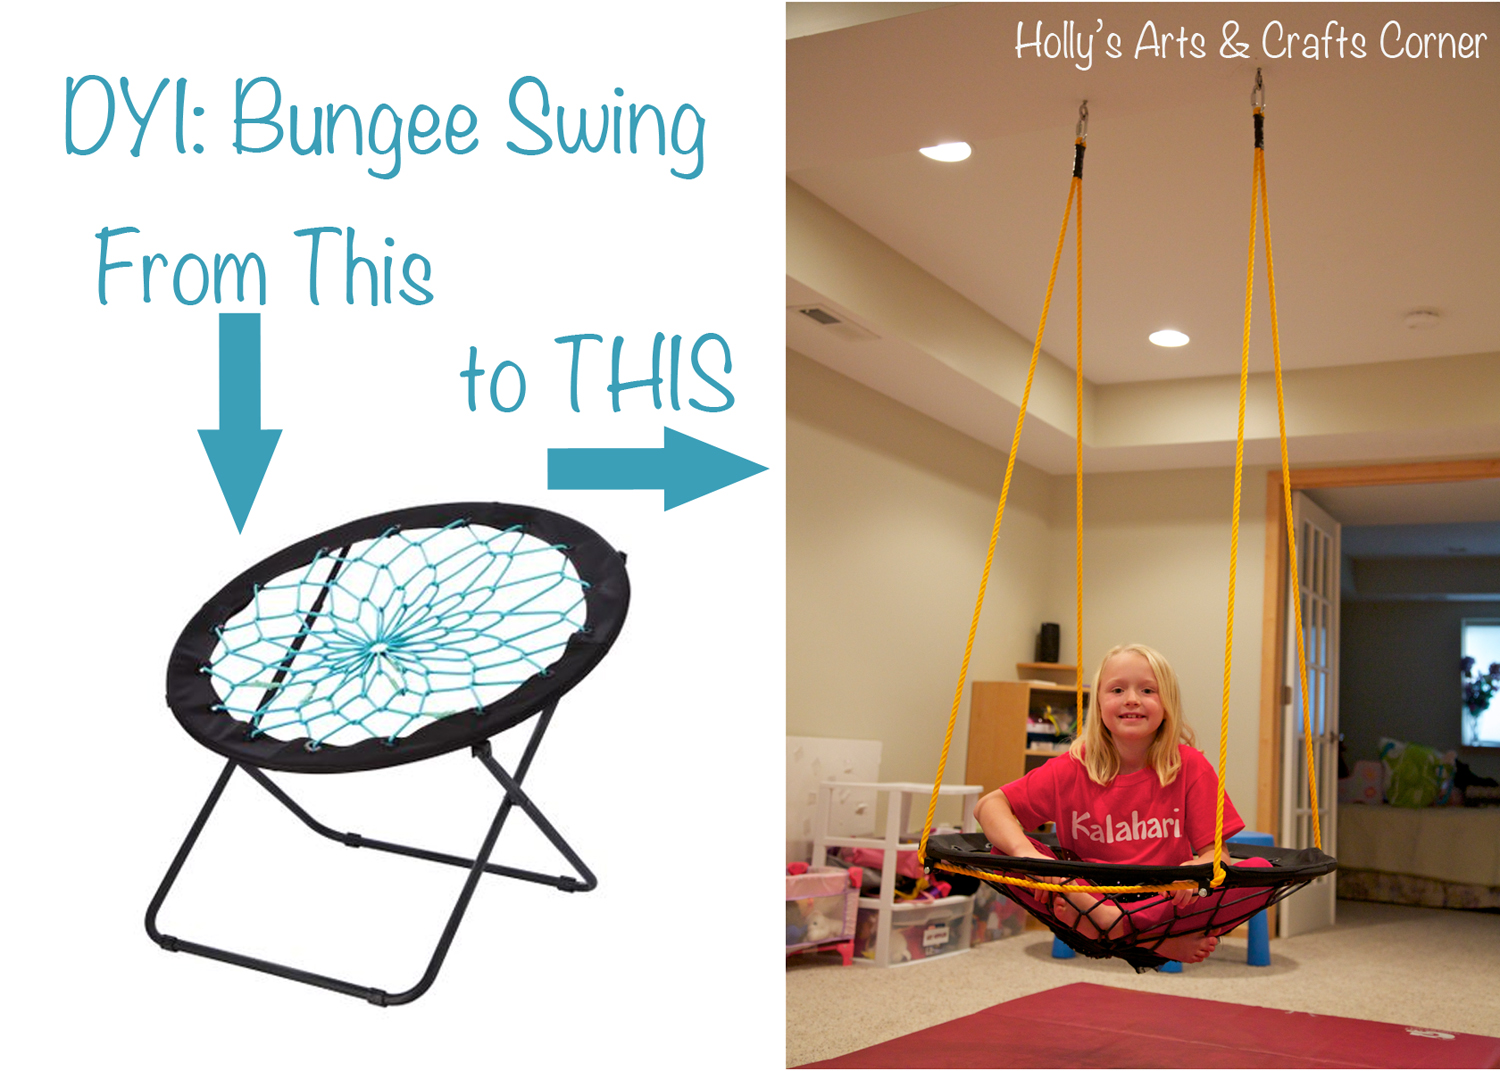 Bungee Cord Chair Diy Wayfair Canada Covers Holly S Arts And Crafts Corner Project Basement Swing I Knew The Cords Would Be Great Sensory Input For My Kids Bodies When You Add In Movement From Bonus